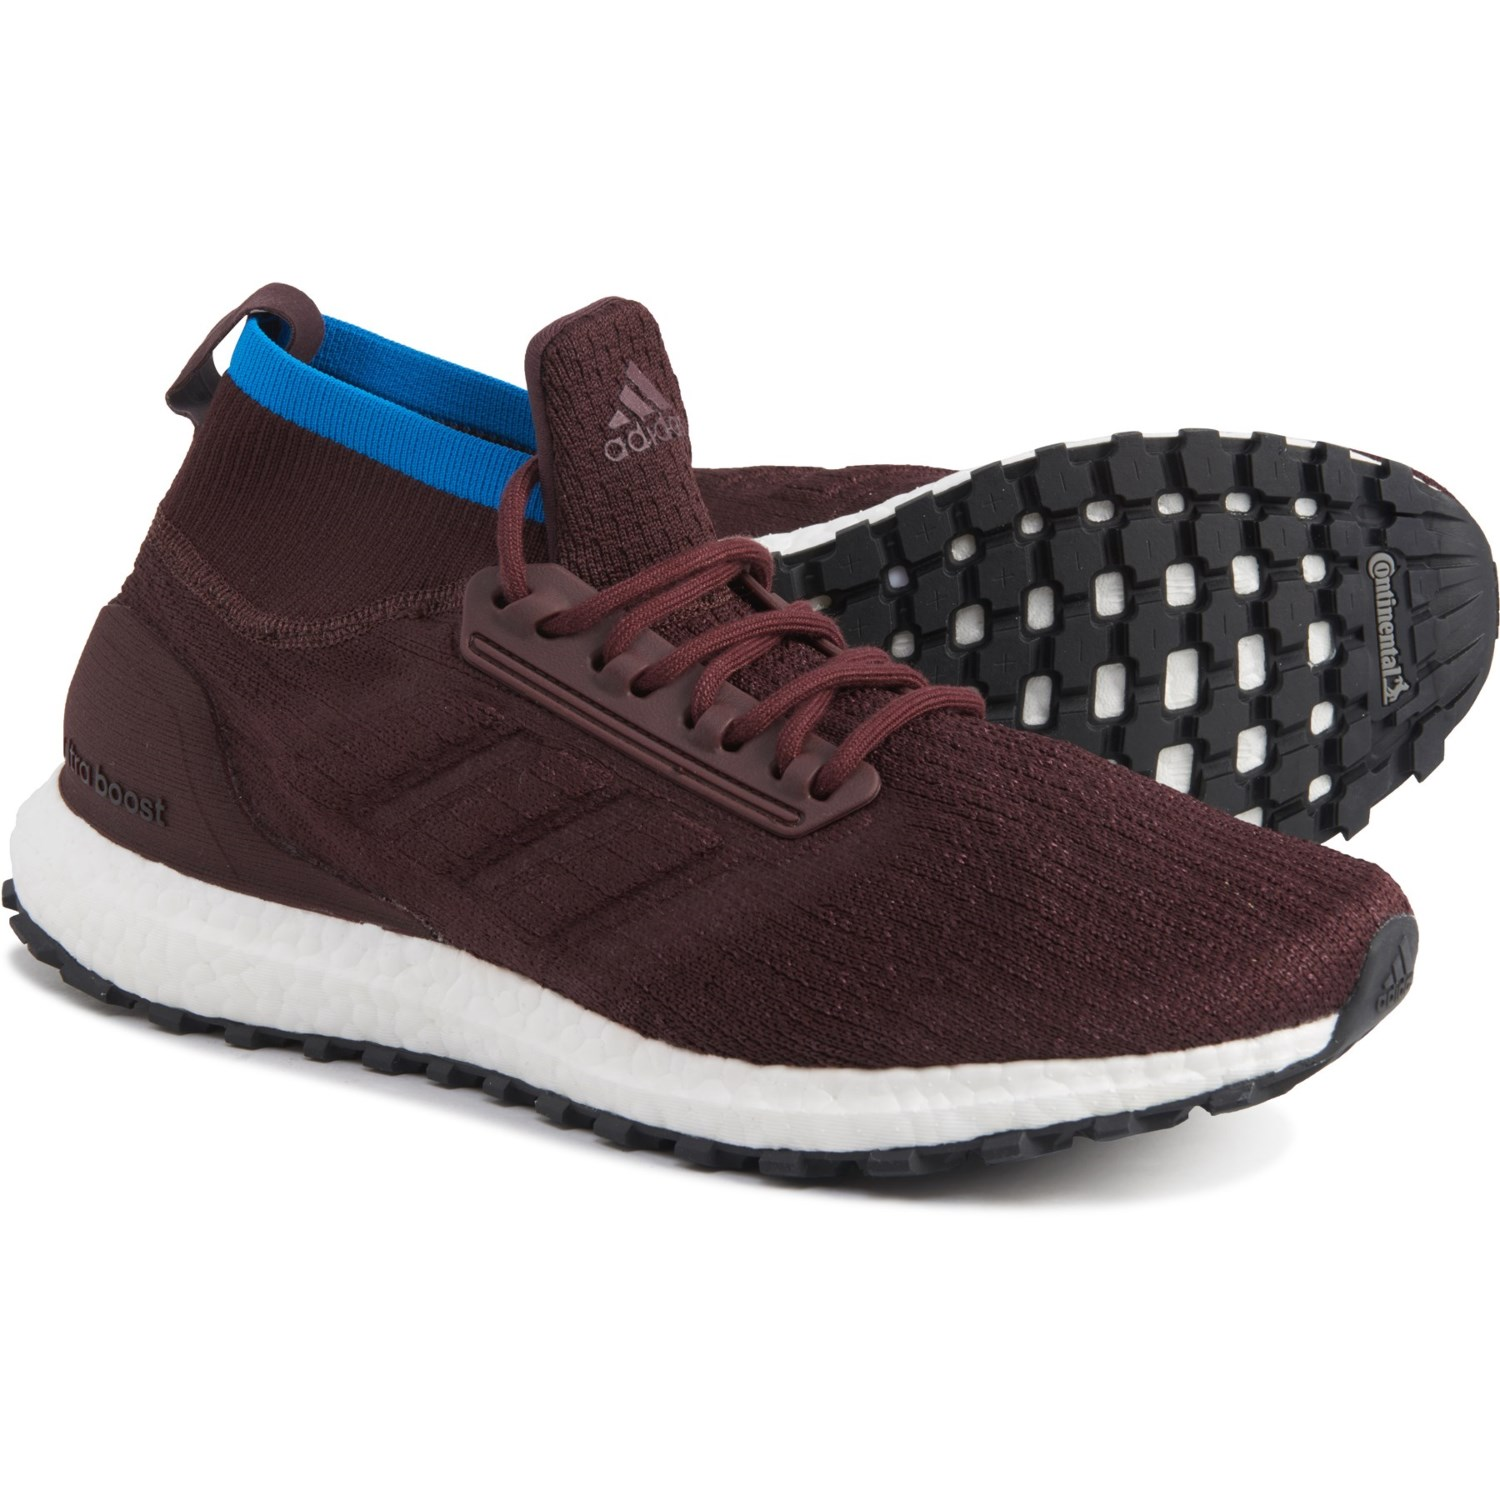 adidas UltraBOOST All Terrain Shoes (For Men) Save 46%